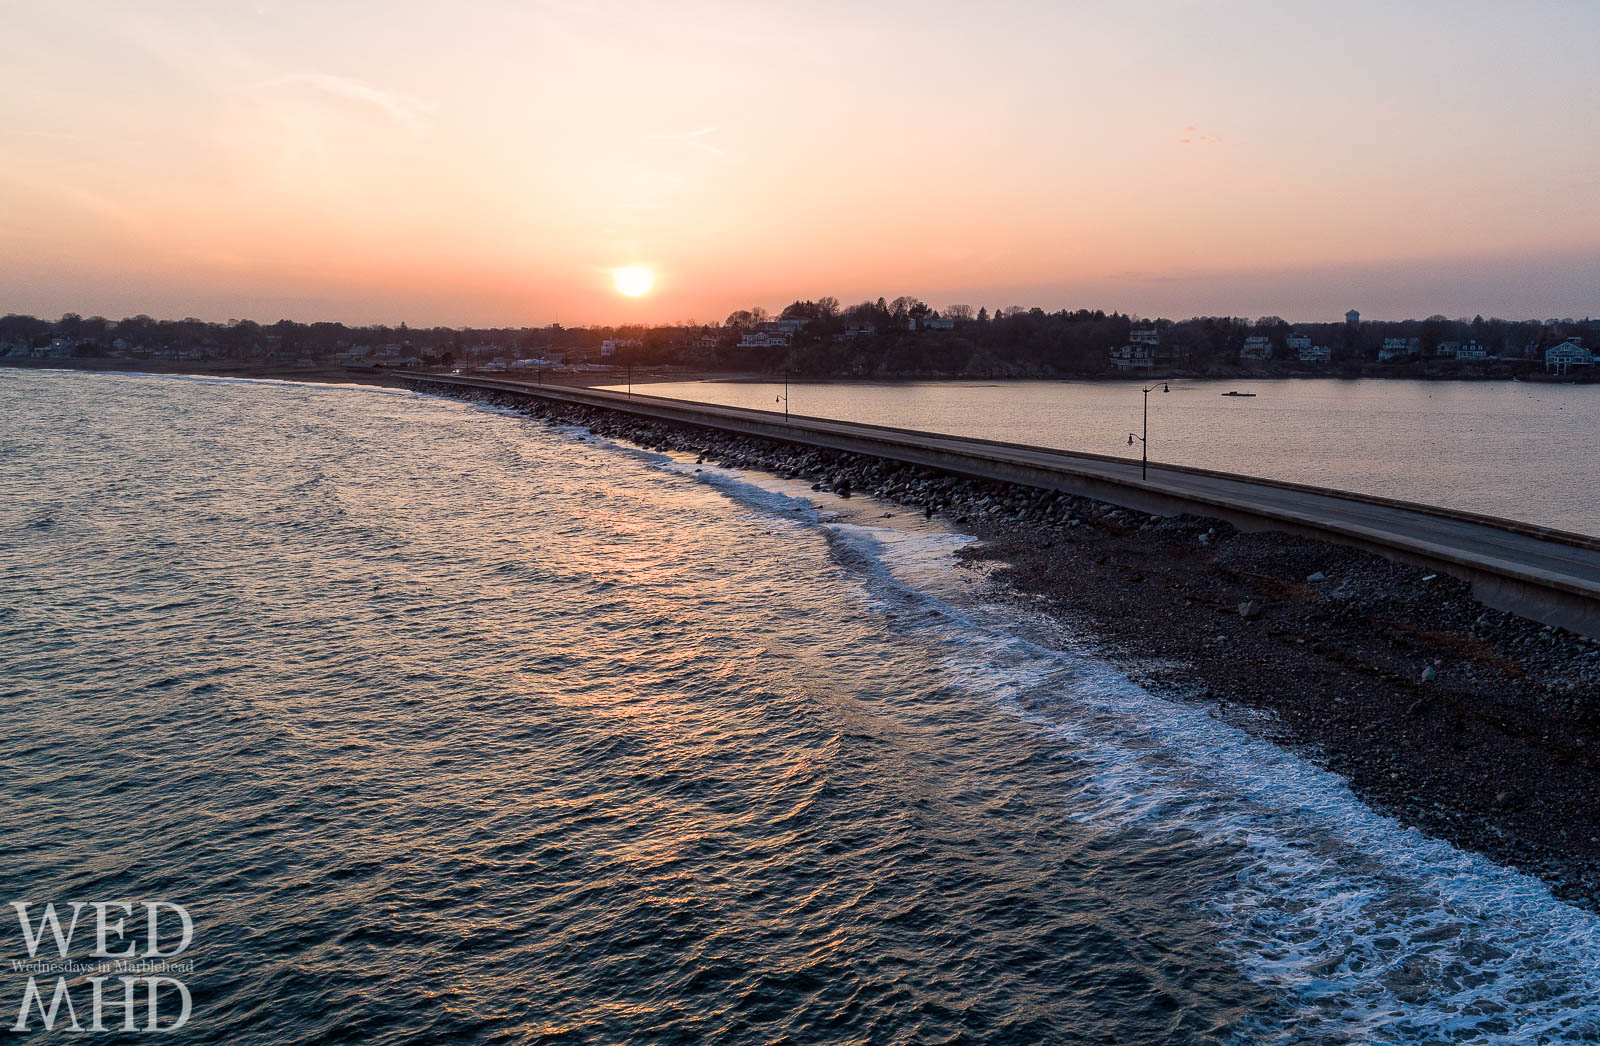 A golden sunset reflects on the Atlantic Ocean in this aerial view over the causeway